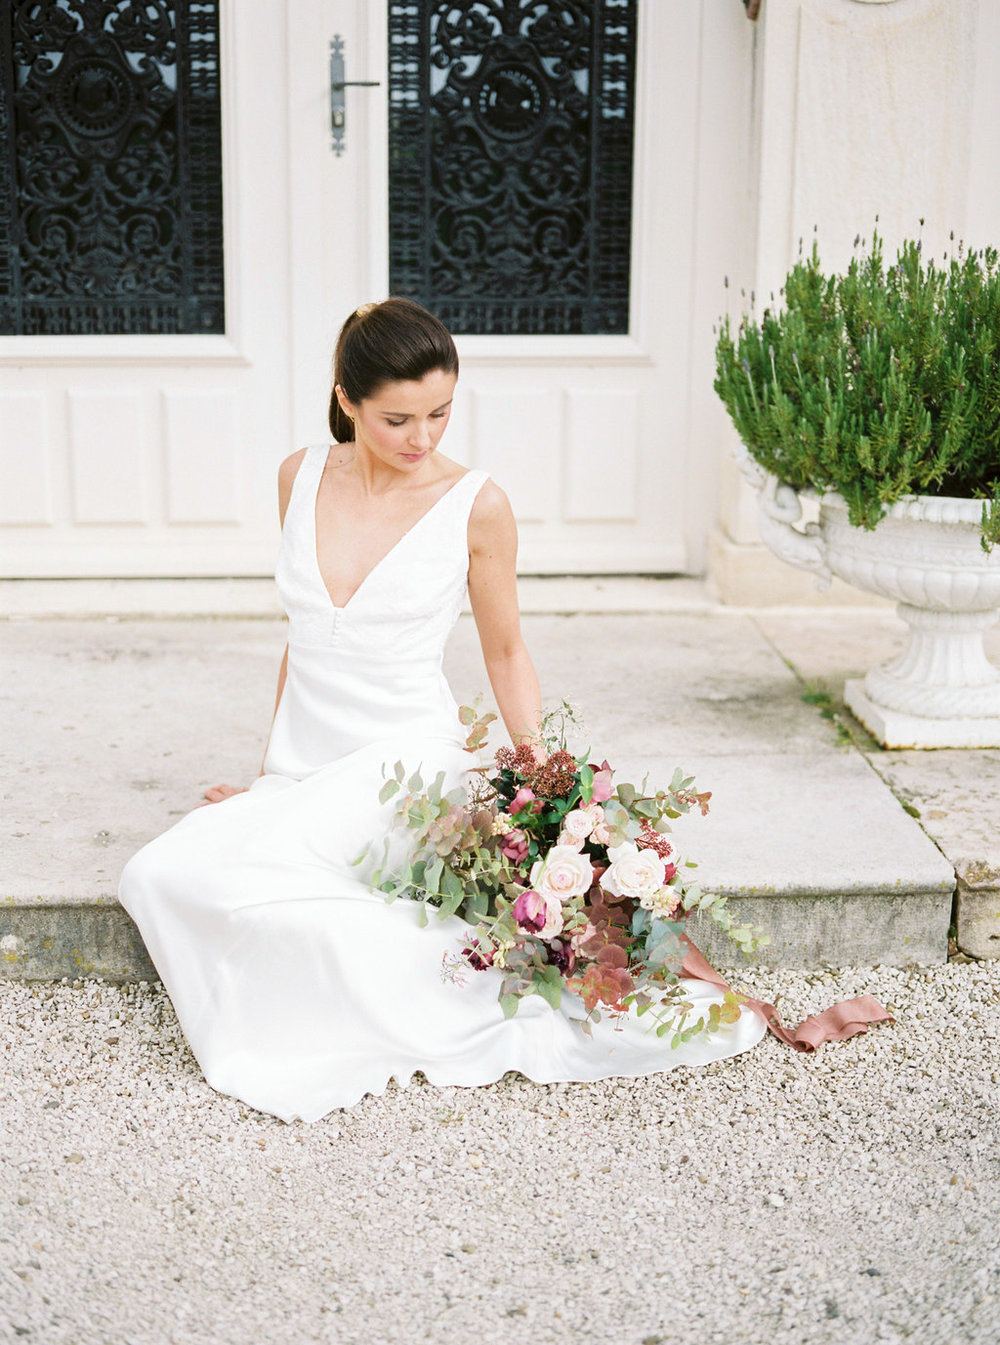 Bride with wedding bouquet wearing Charlie Brear dress